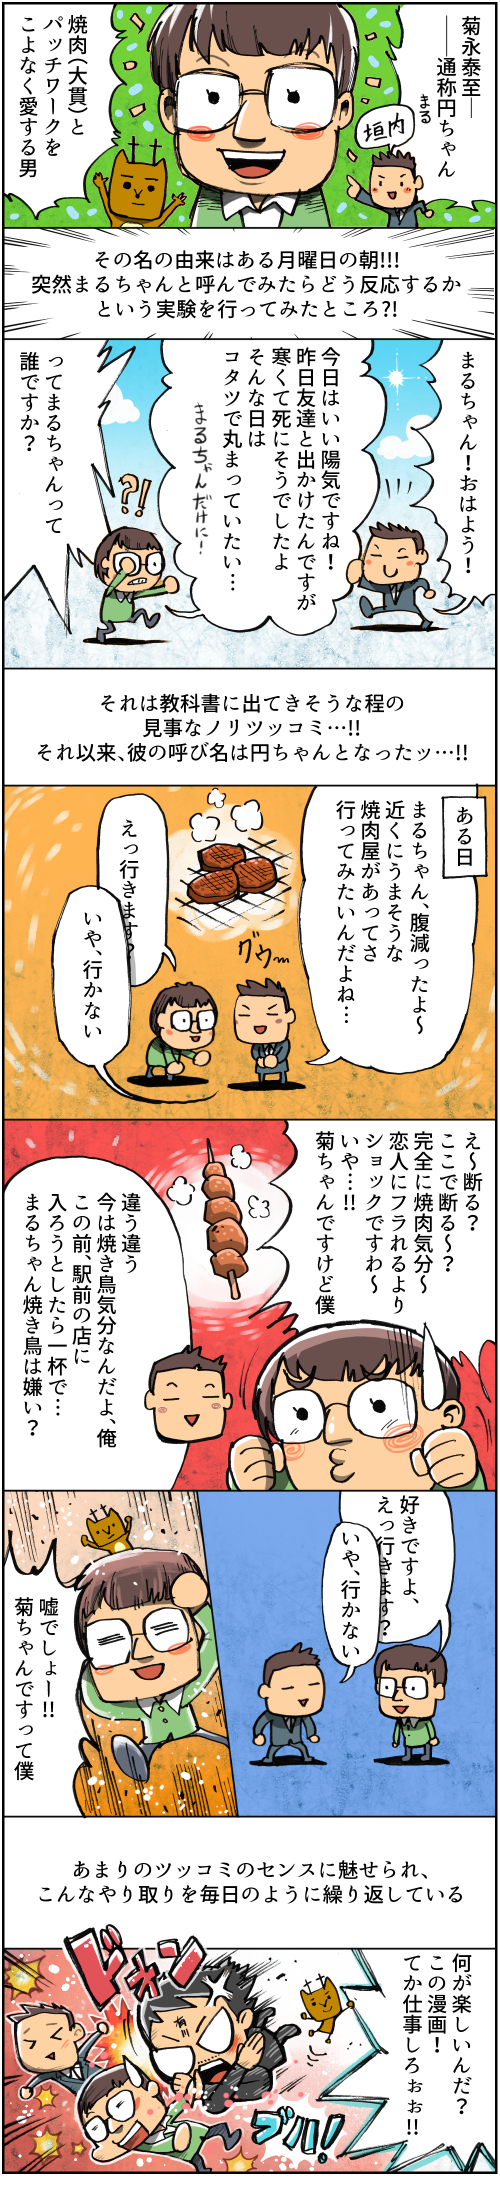 weekly_comic_19_maru_bou3.jpg